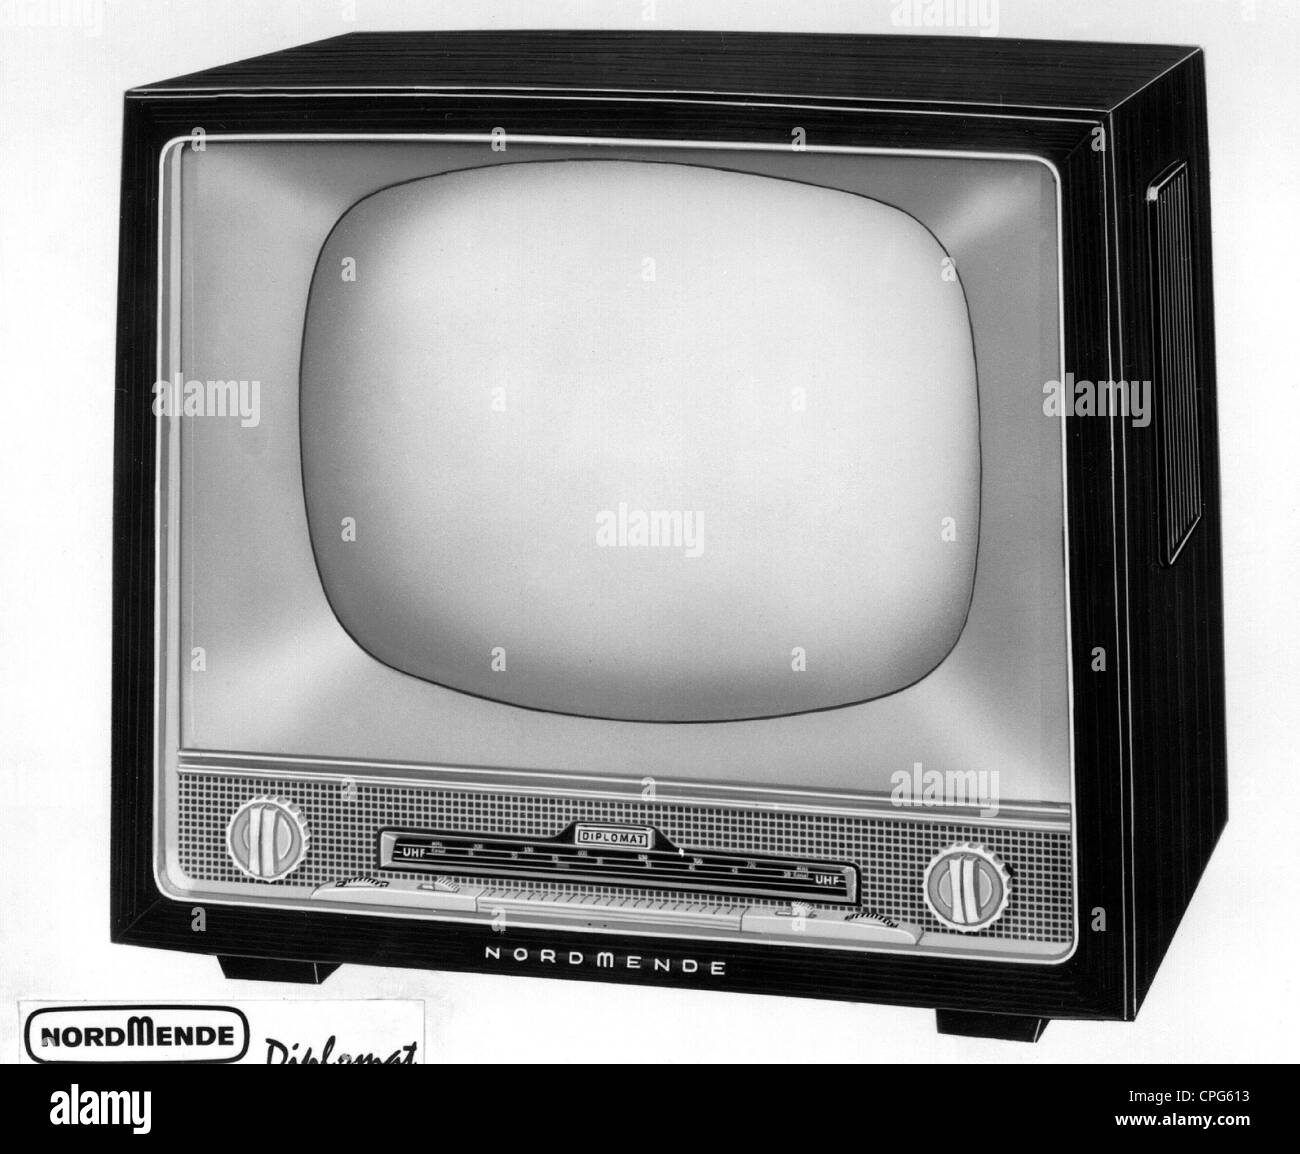 broadcast television television set nordmende diplomat 1950s